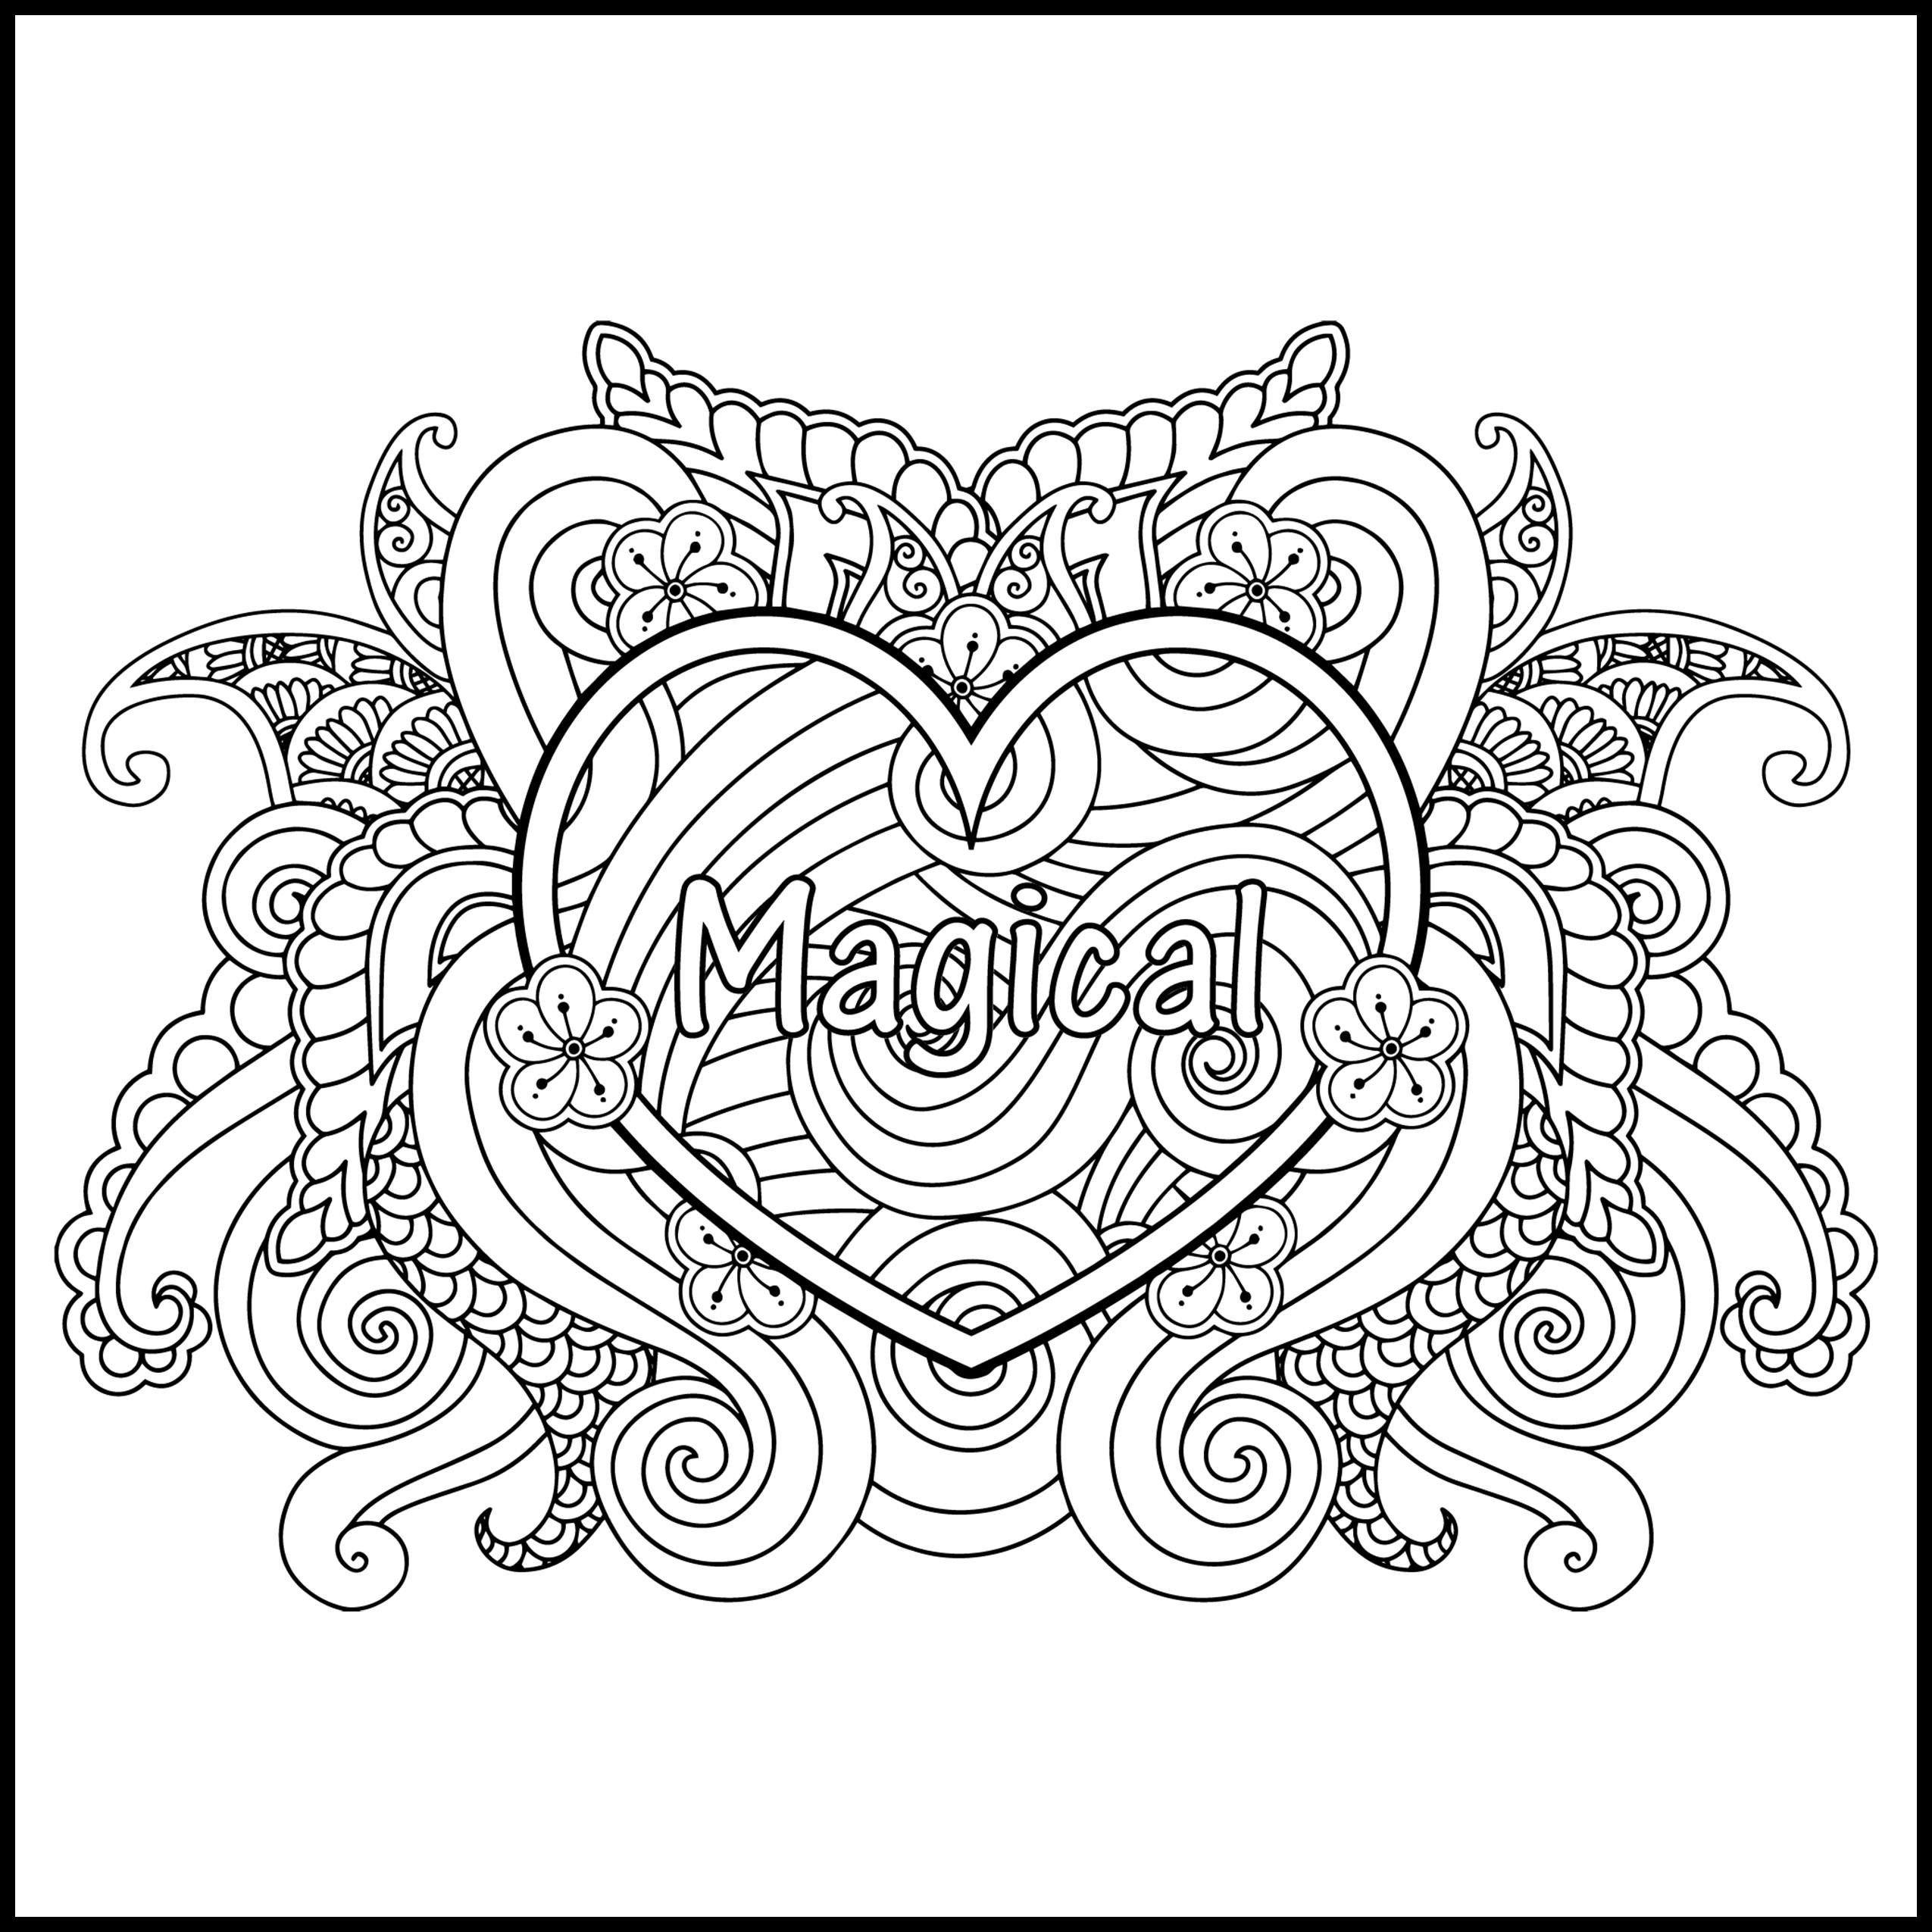 I AM Magical - Adult Coloring Page - Inspiring Coloring Page ...